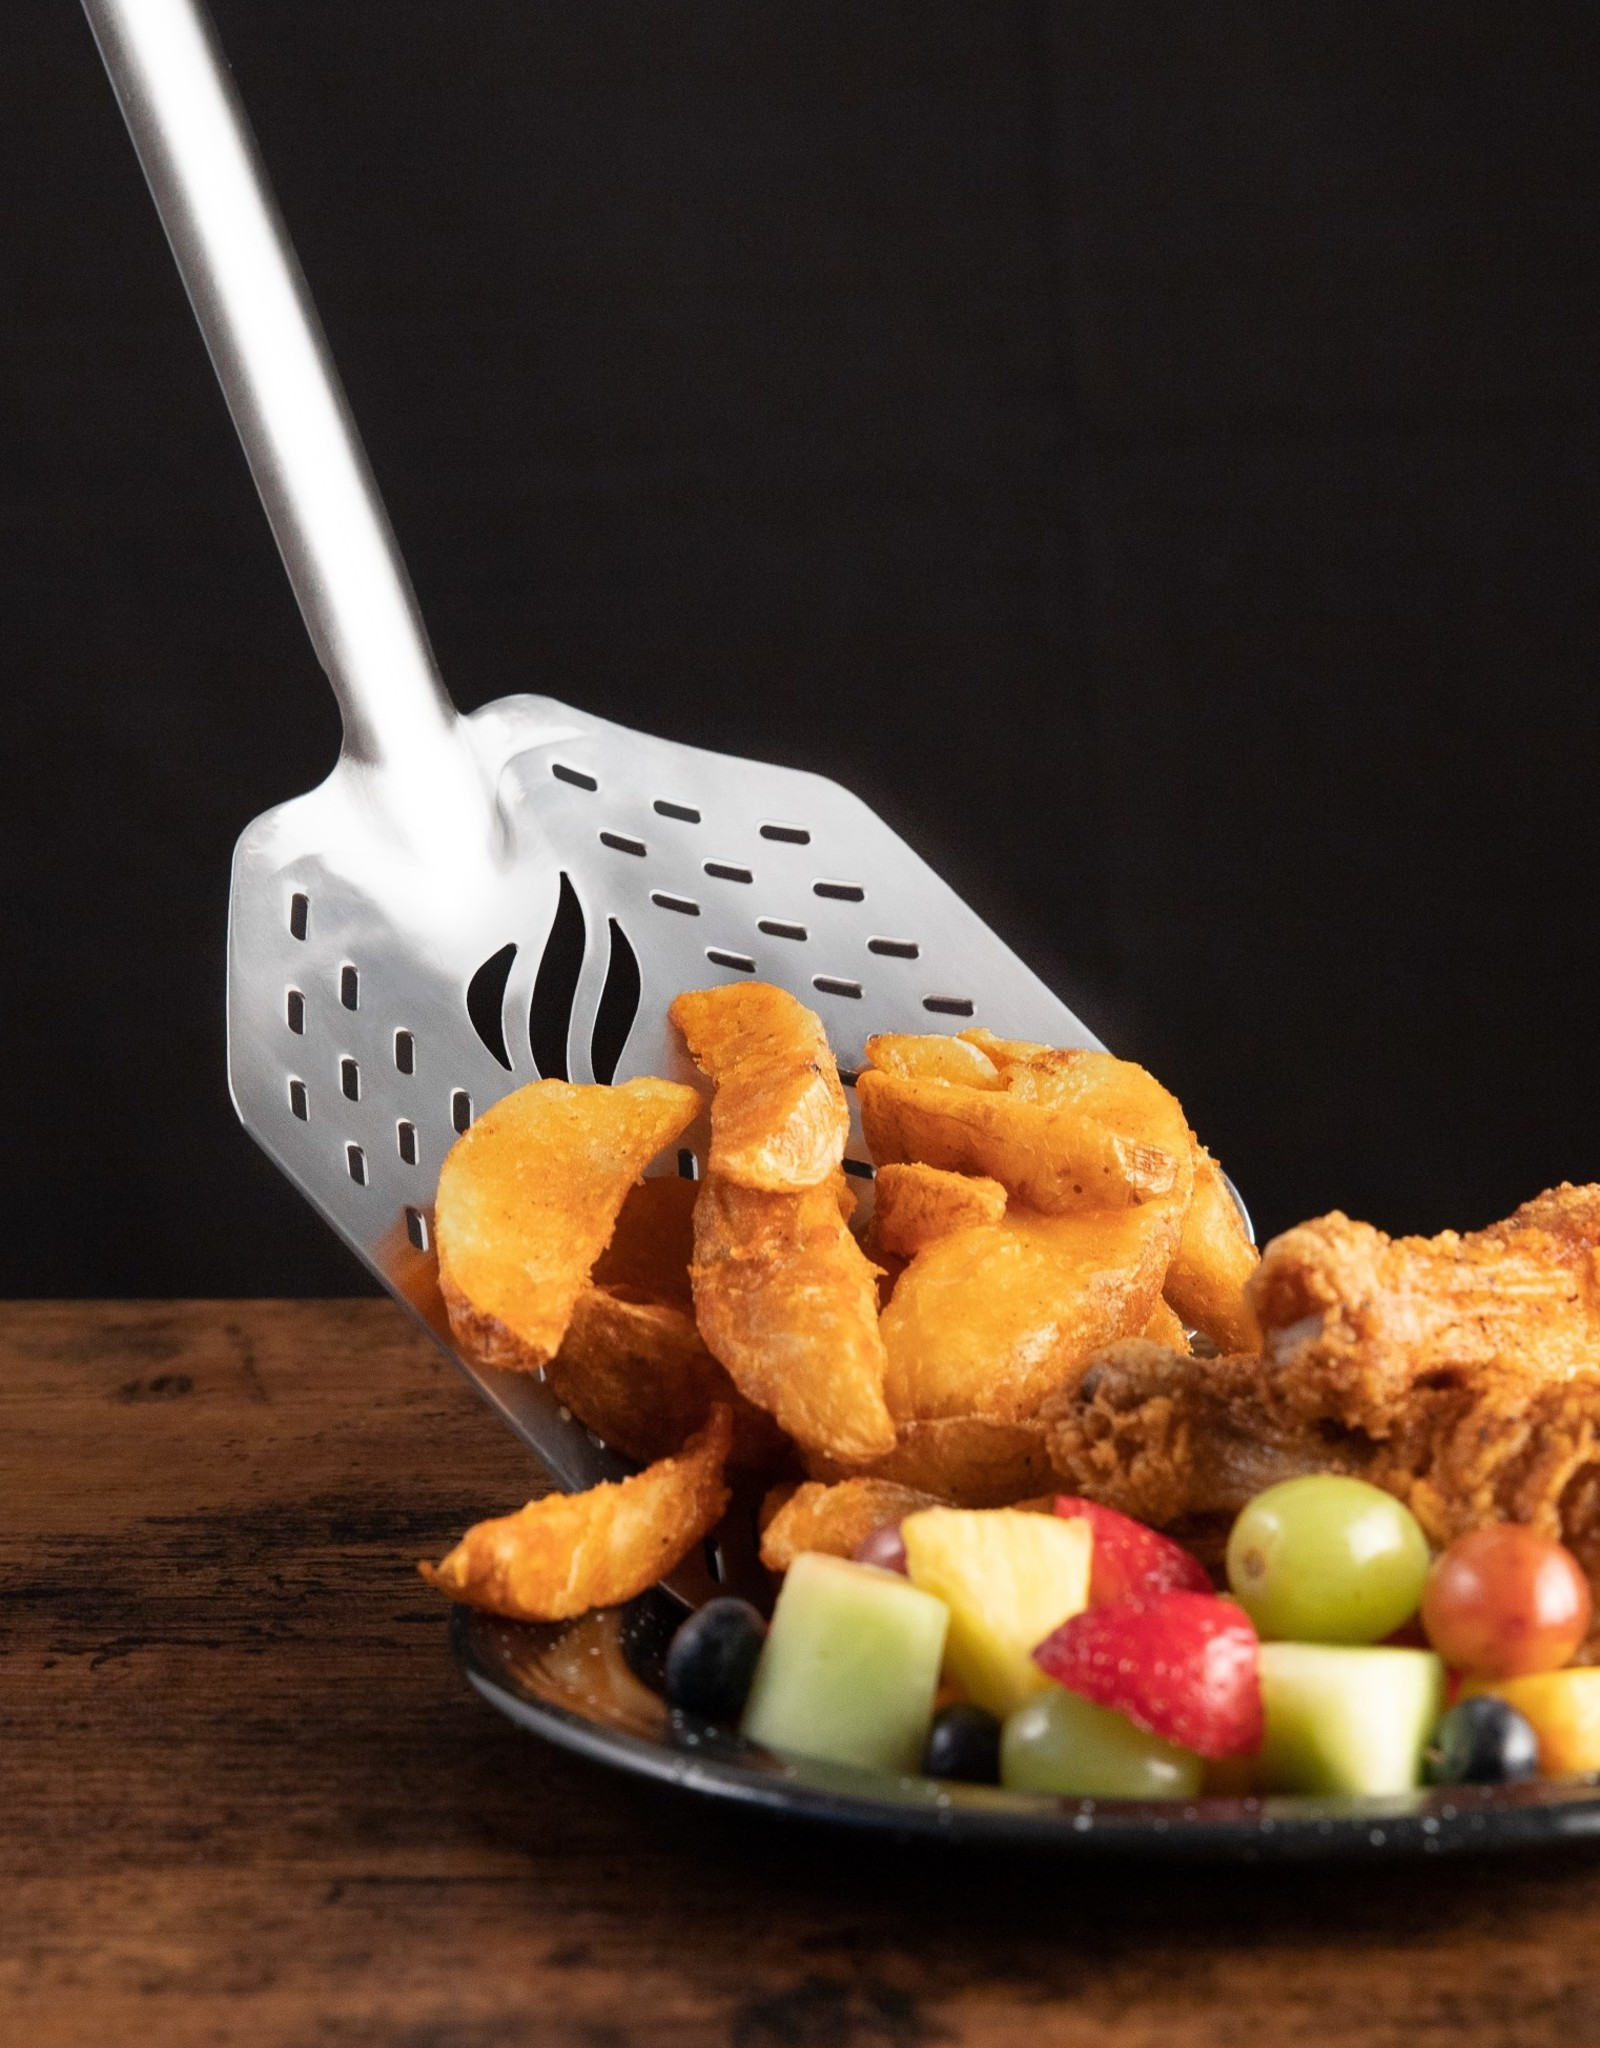 Blackstone Blackstone Signature Fryer Serving Kit with Tongs and Scoop - 5282